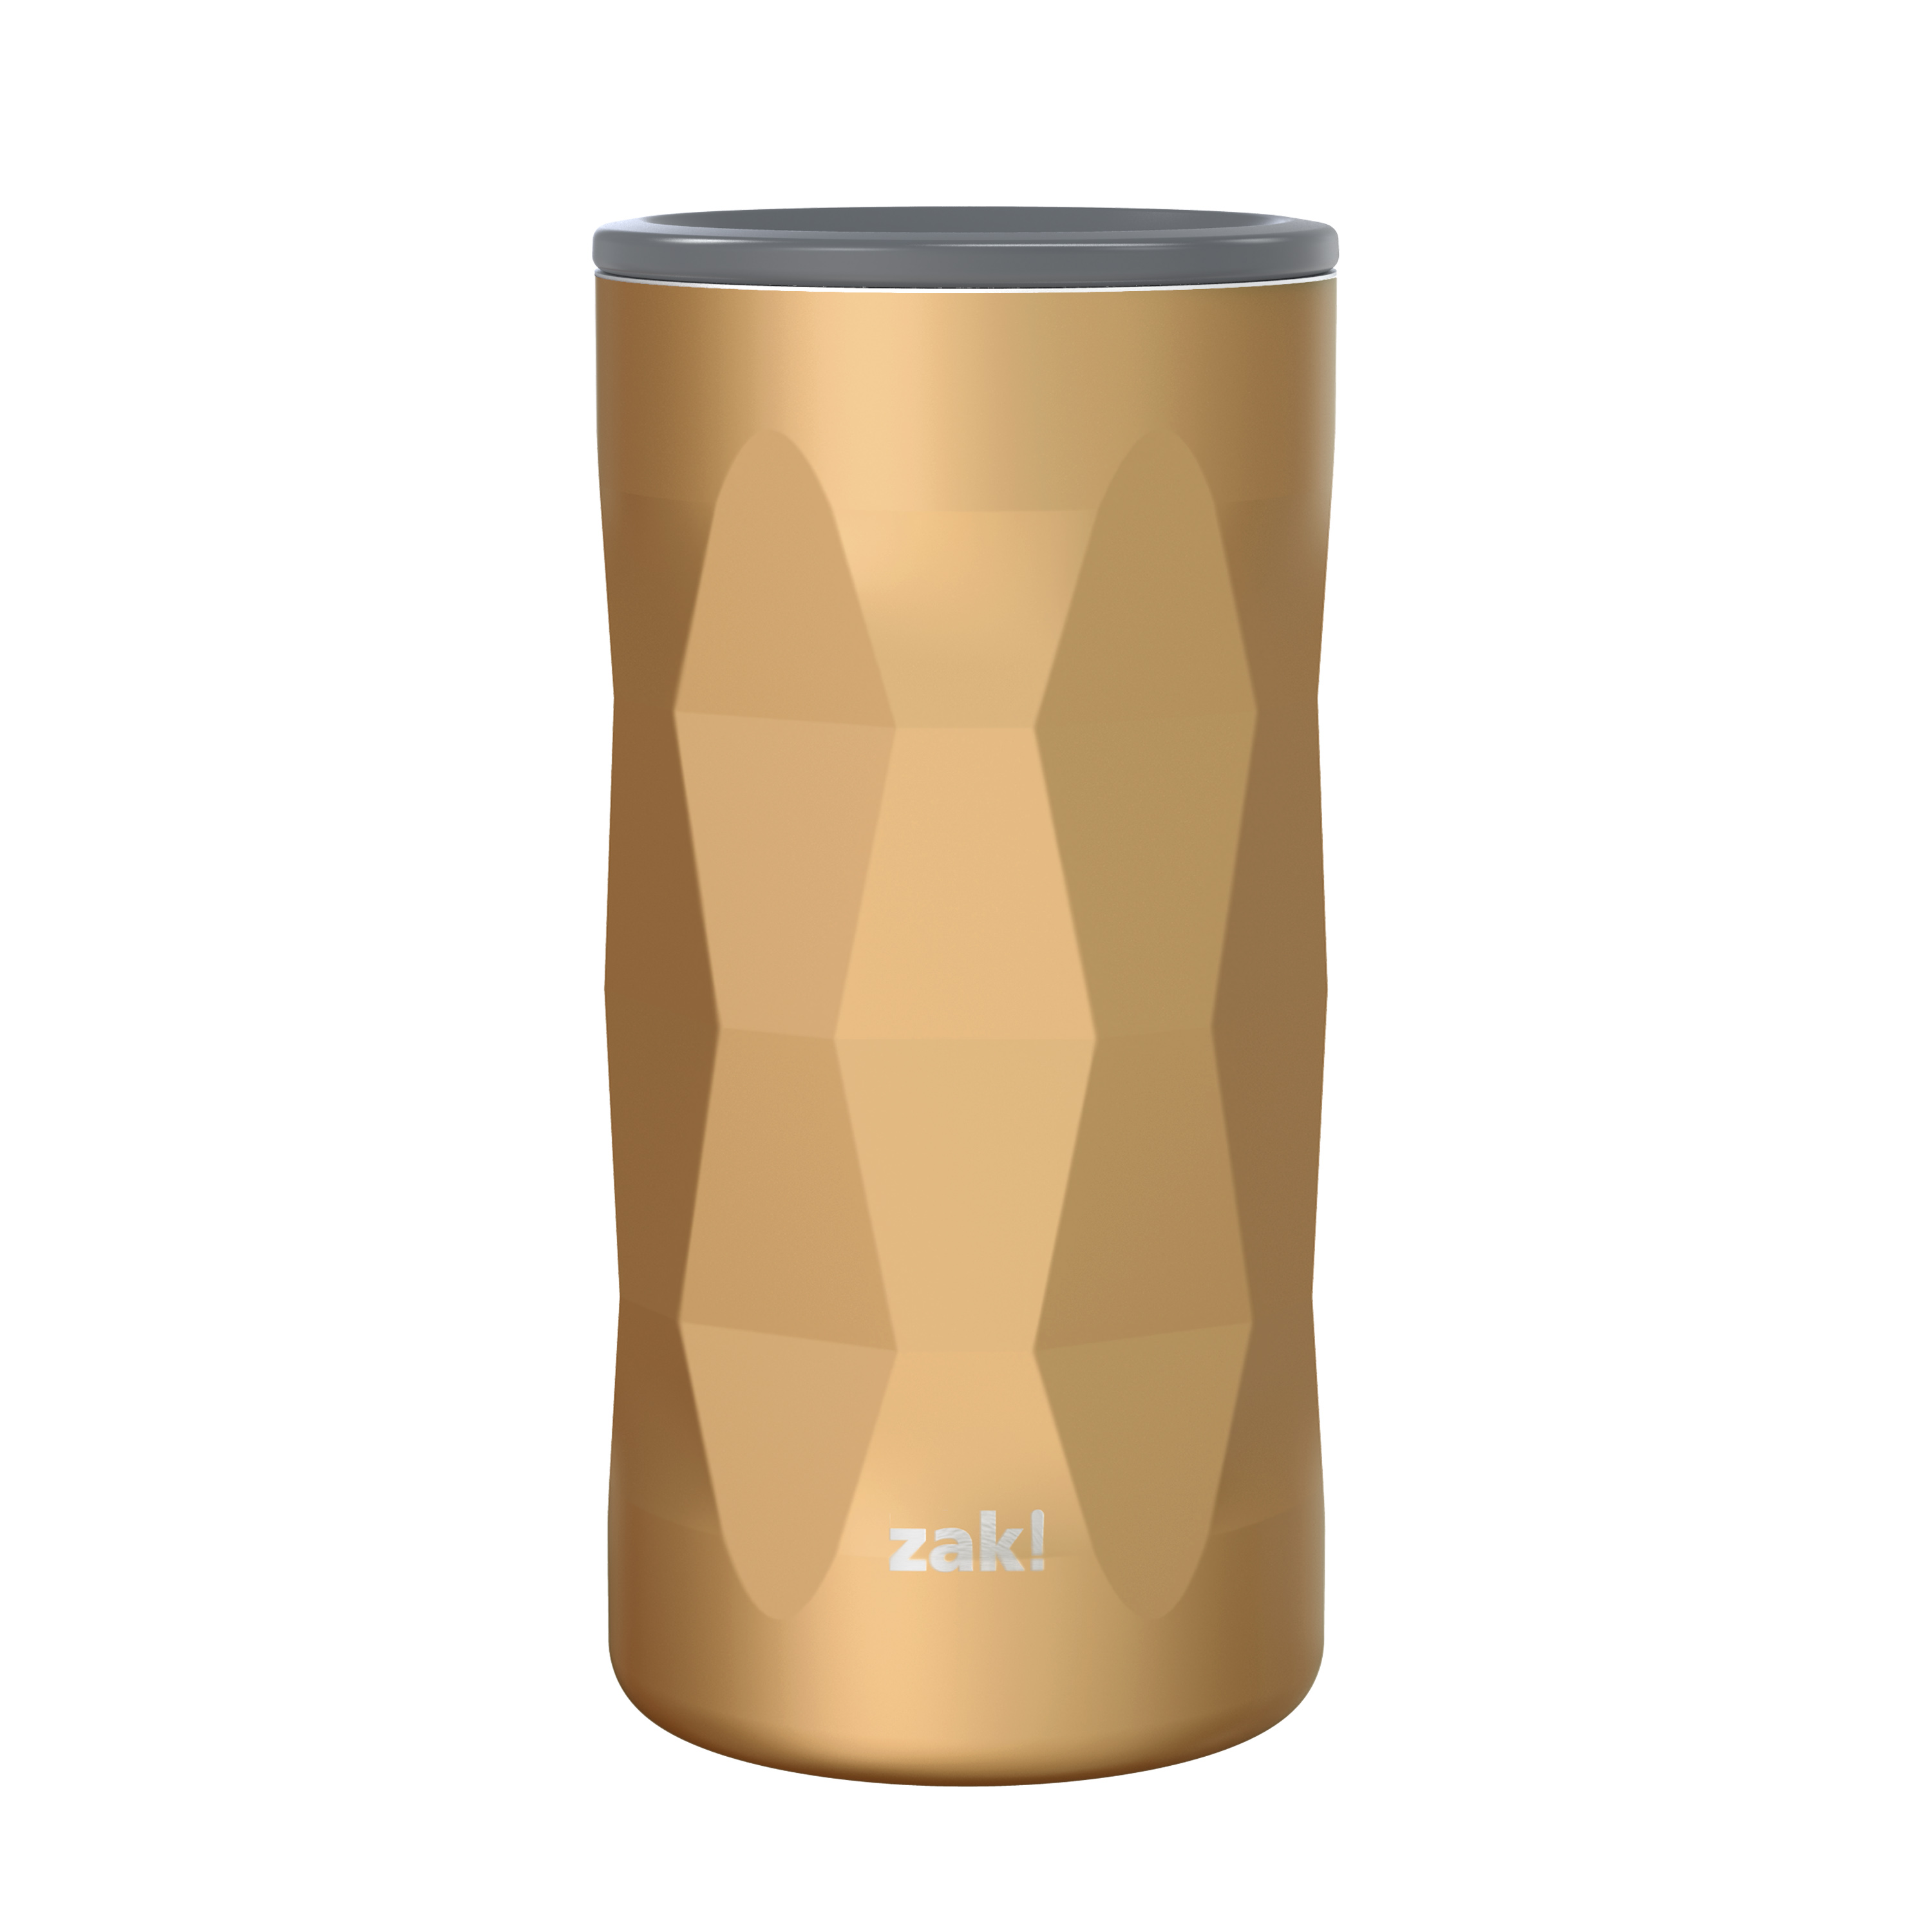 Fractal 12 ounce Vacuum Insulated Stainless Steel Tumbler, Copper slideshow image 1